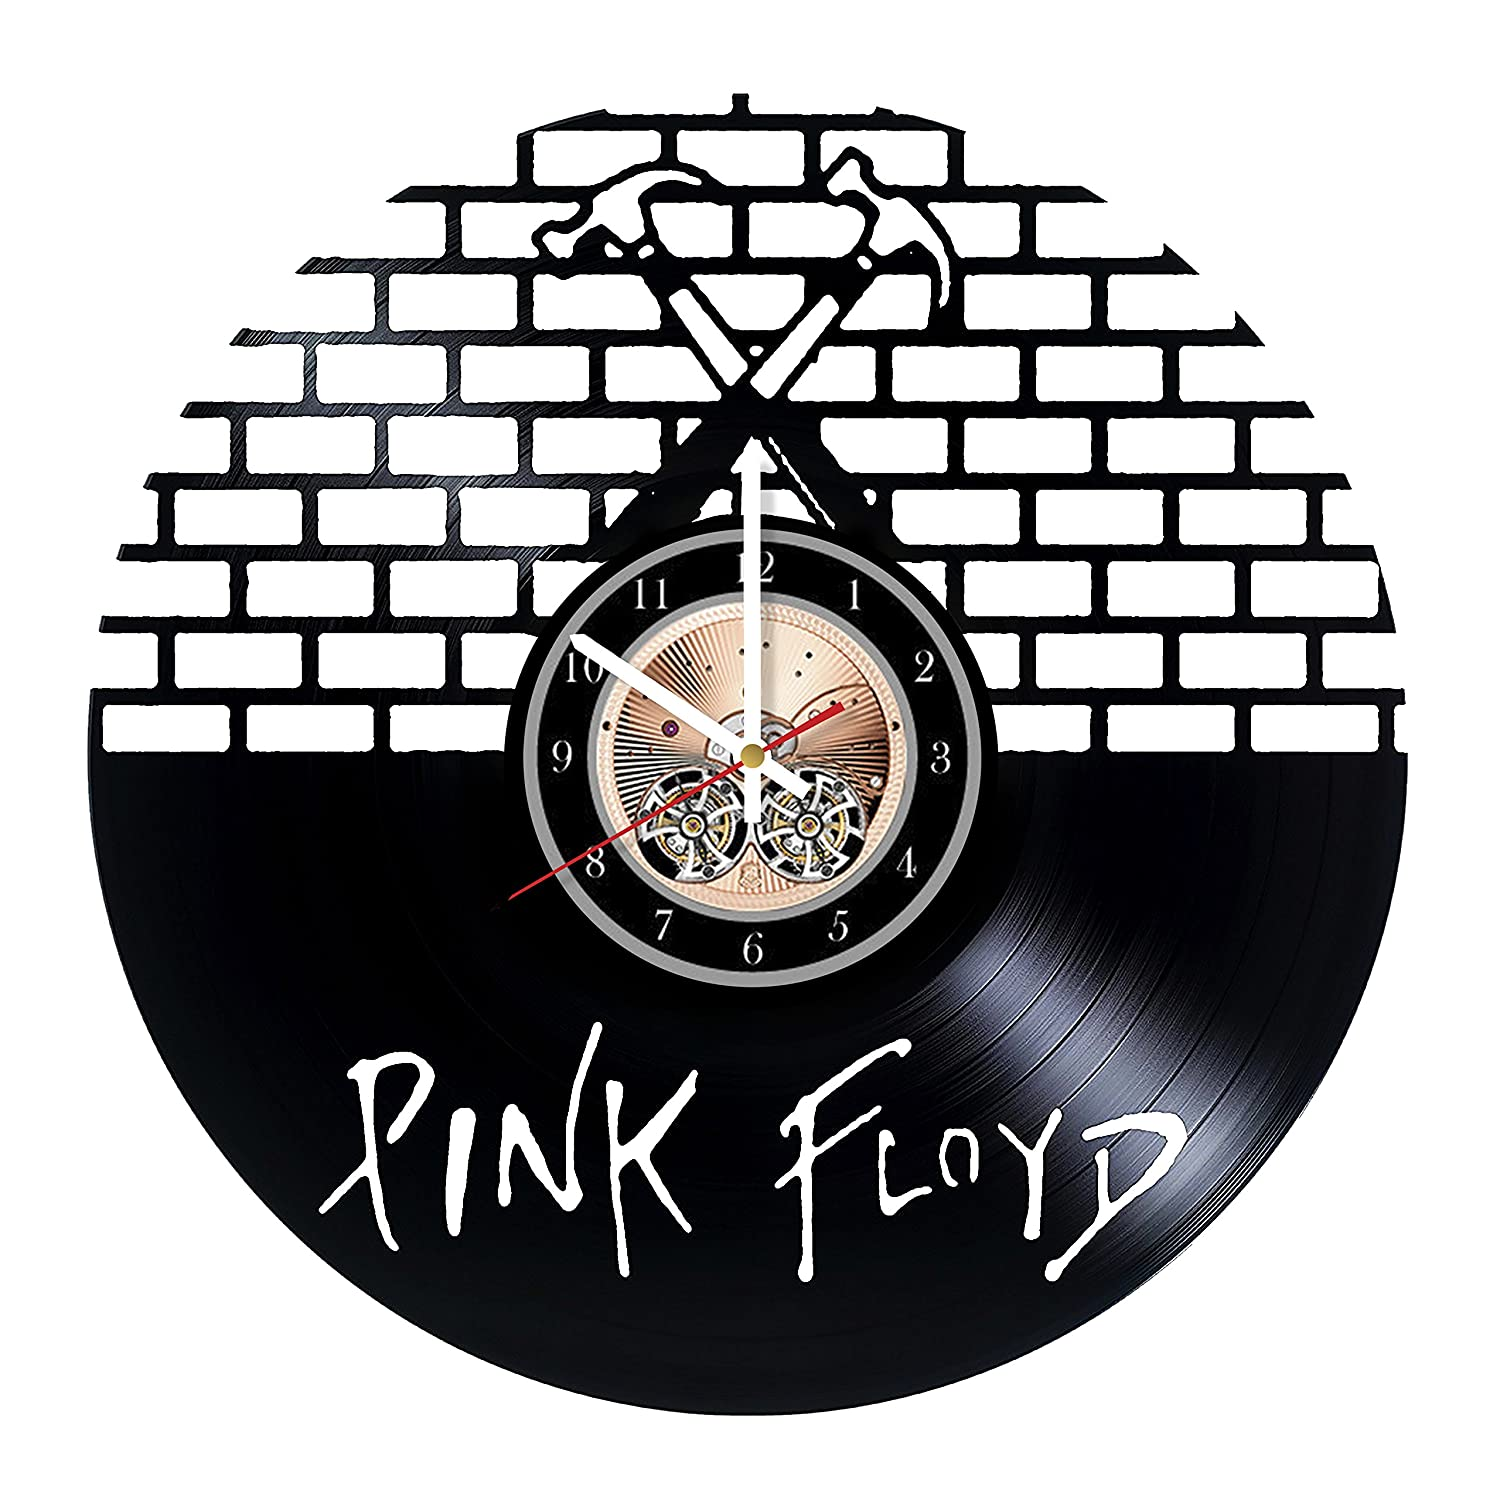 Pink Floyd English Rock Band HANDMADE Vinyl Record Wall Clock - Get unique bedroom or living room wall decor - Gift ideas for him and her